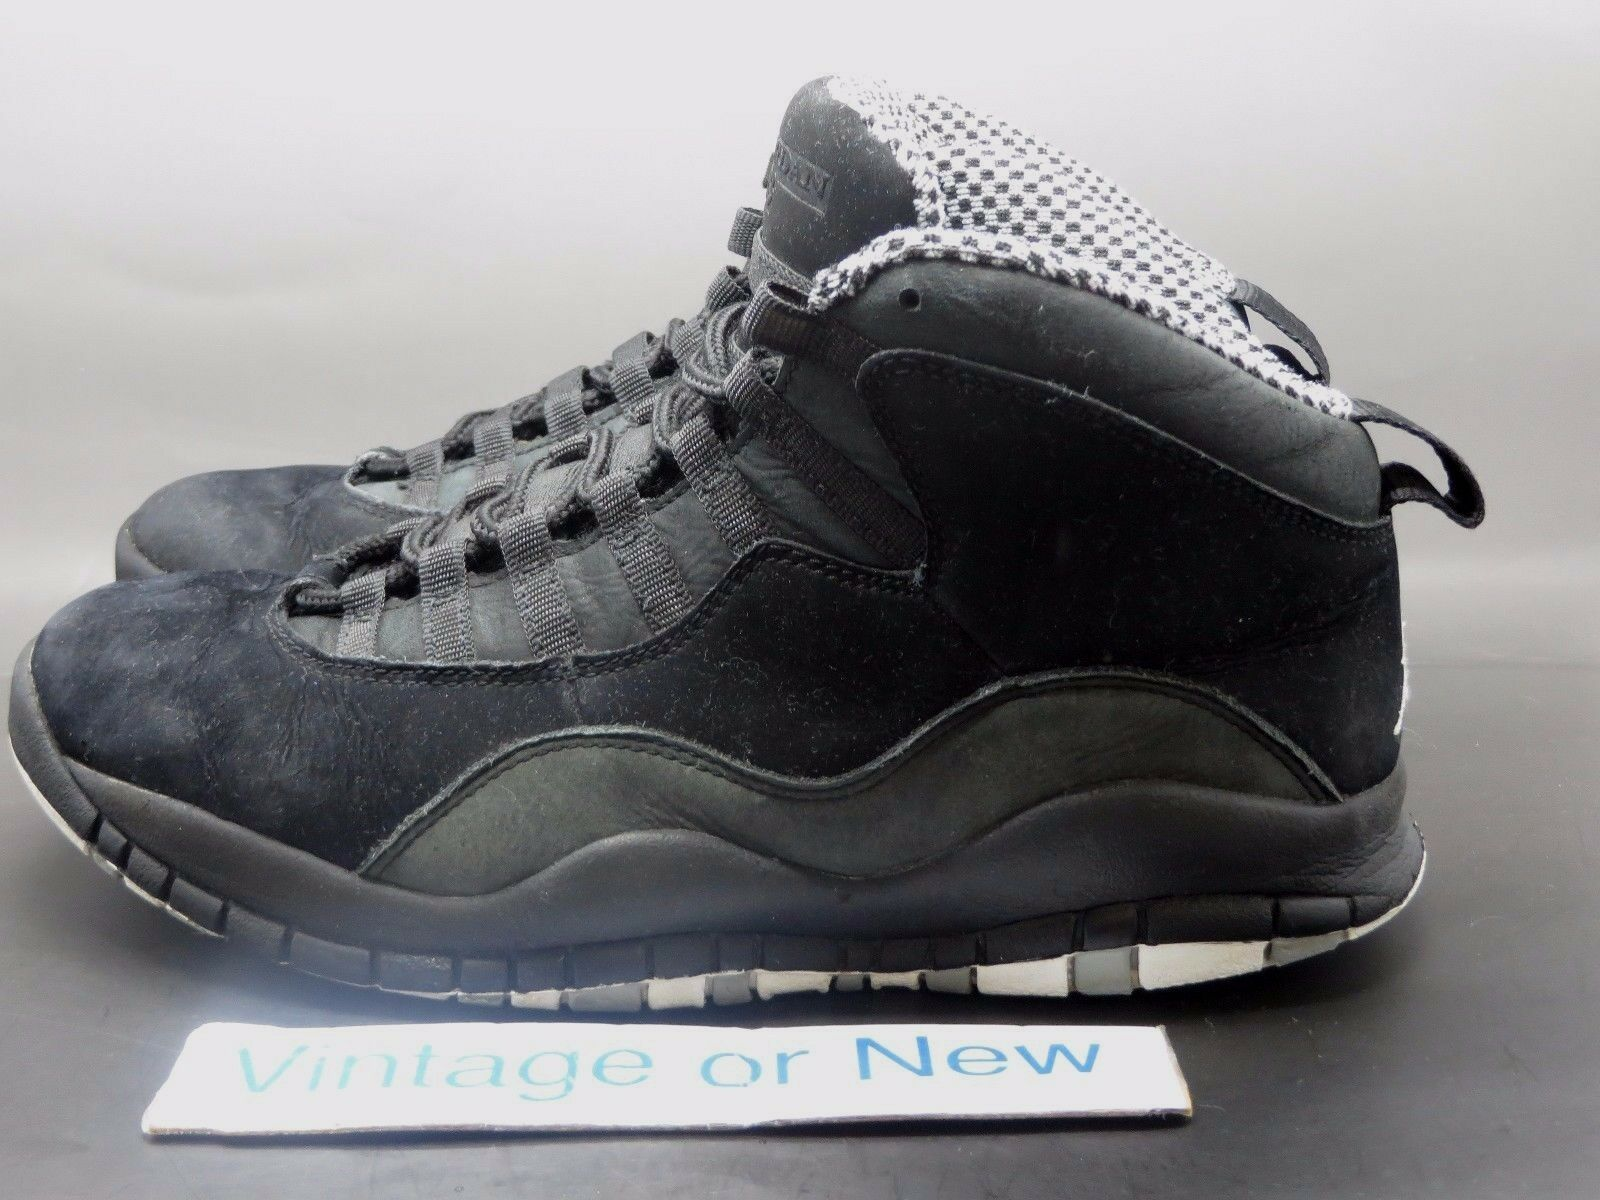 on sale 9b4c5 78531 ... Air Jordan X 10 Stealth Retro 2012 2012 2012 sz 8 e0dd48 ...